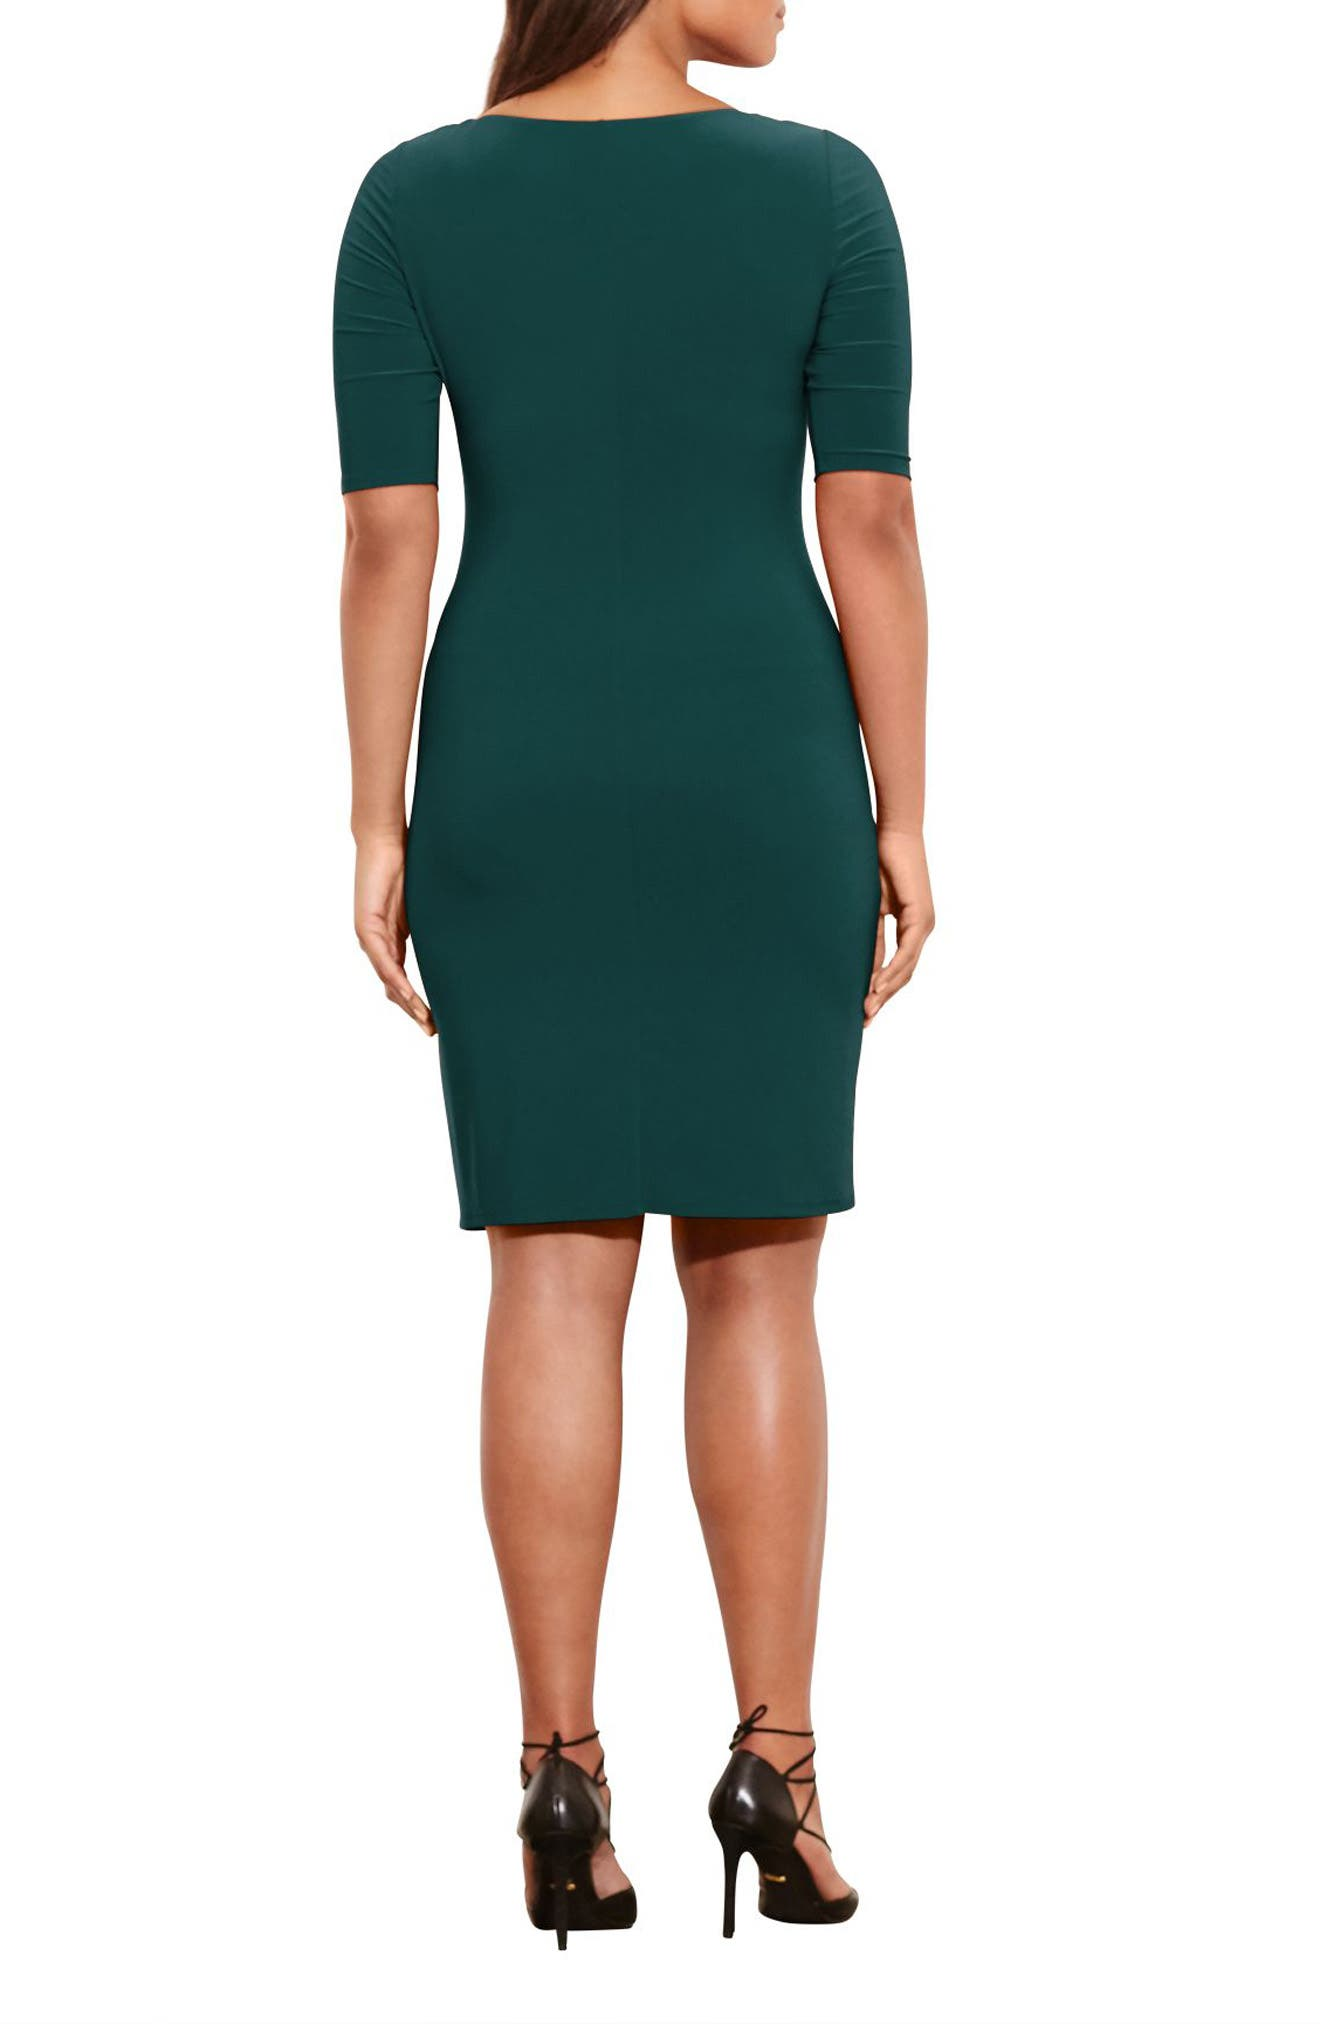 Carleton Cowl Neck Jersey Dress,                             Alternate thumbnail 2, color,                             Woodland Green